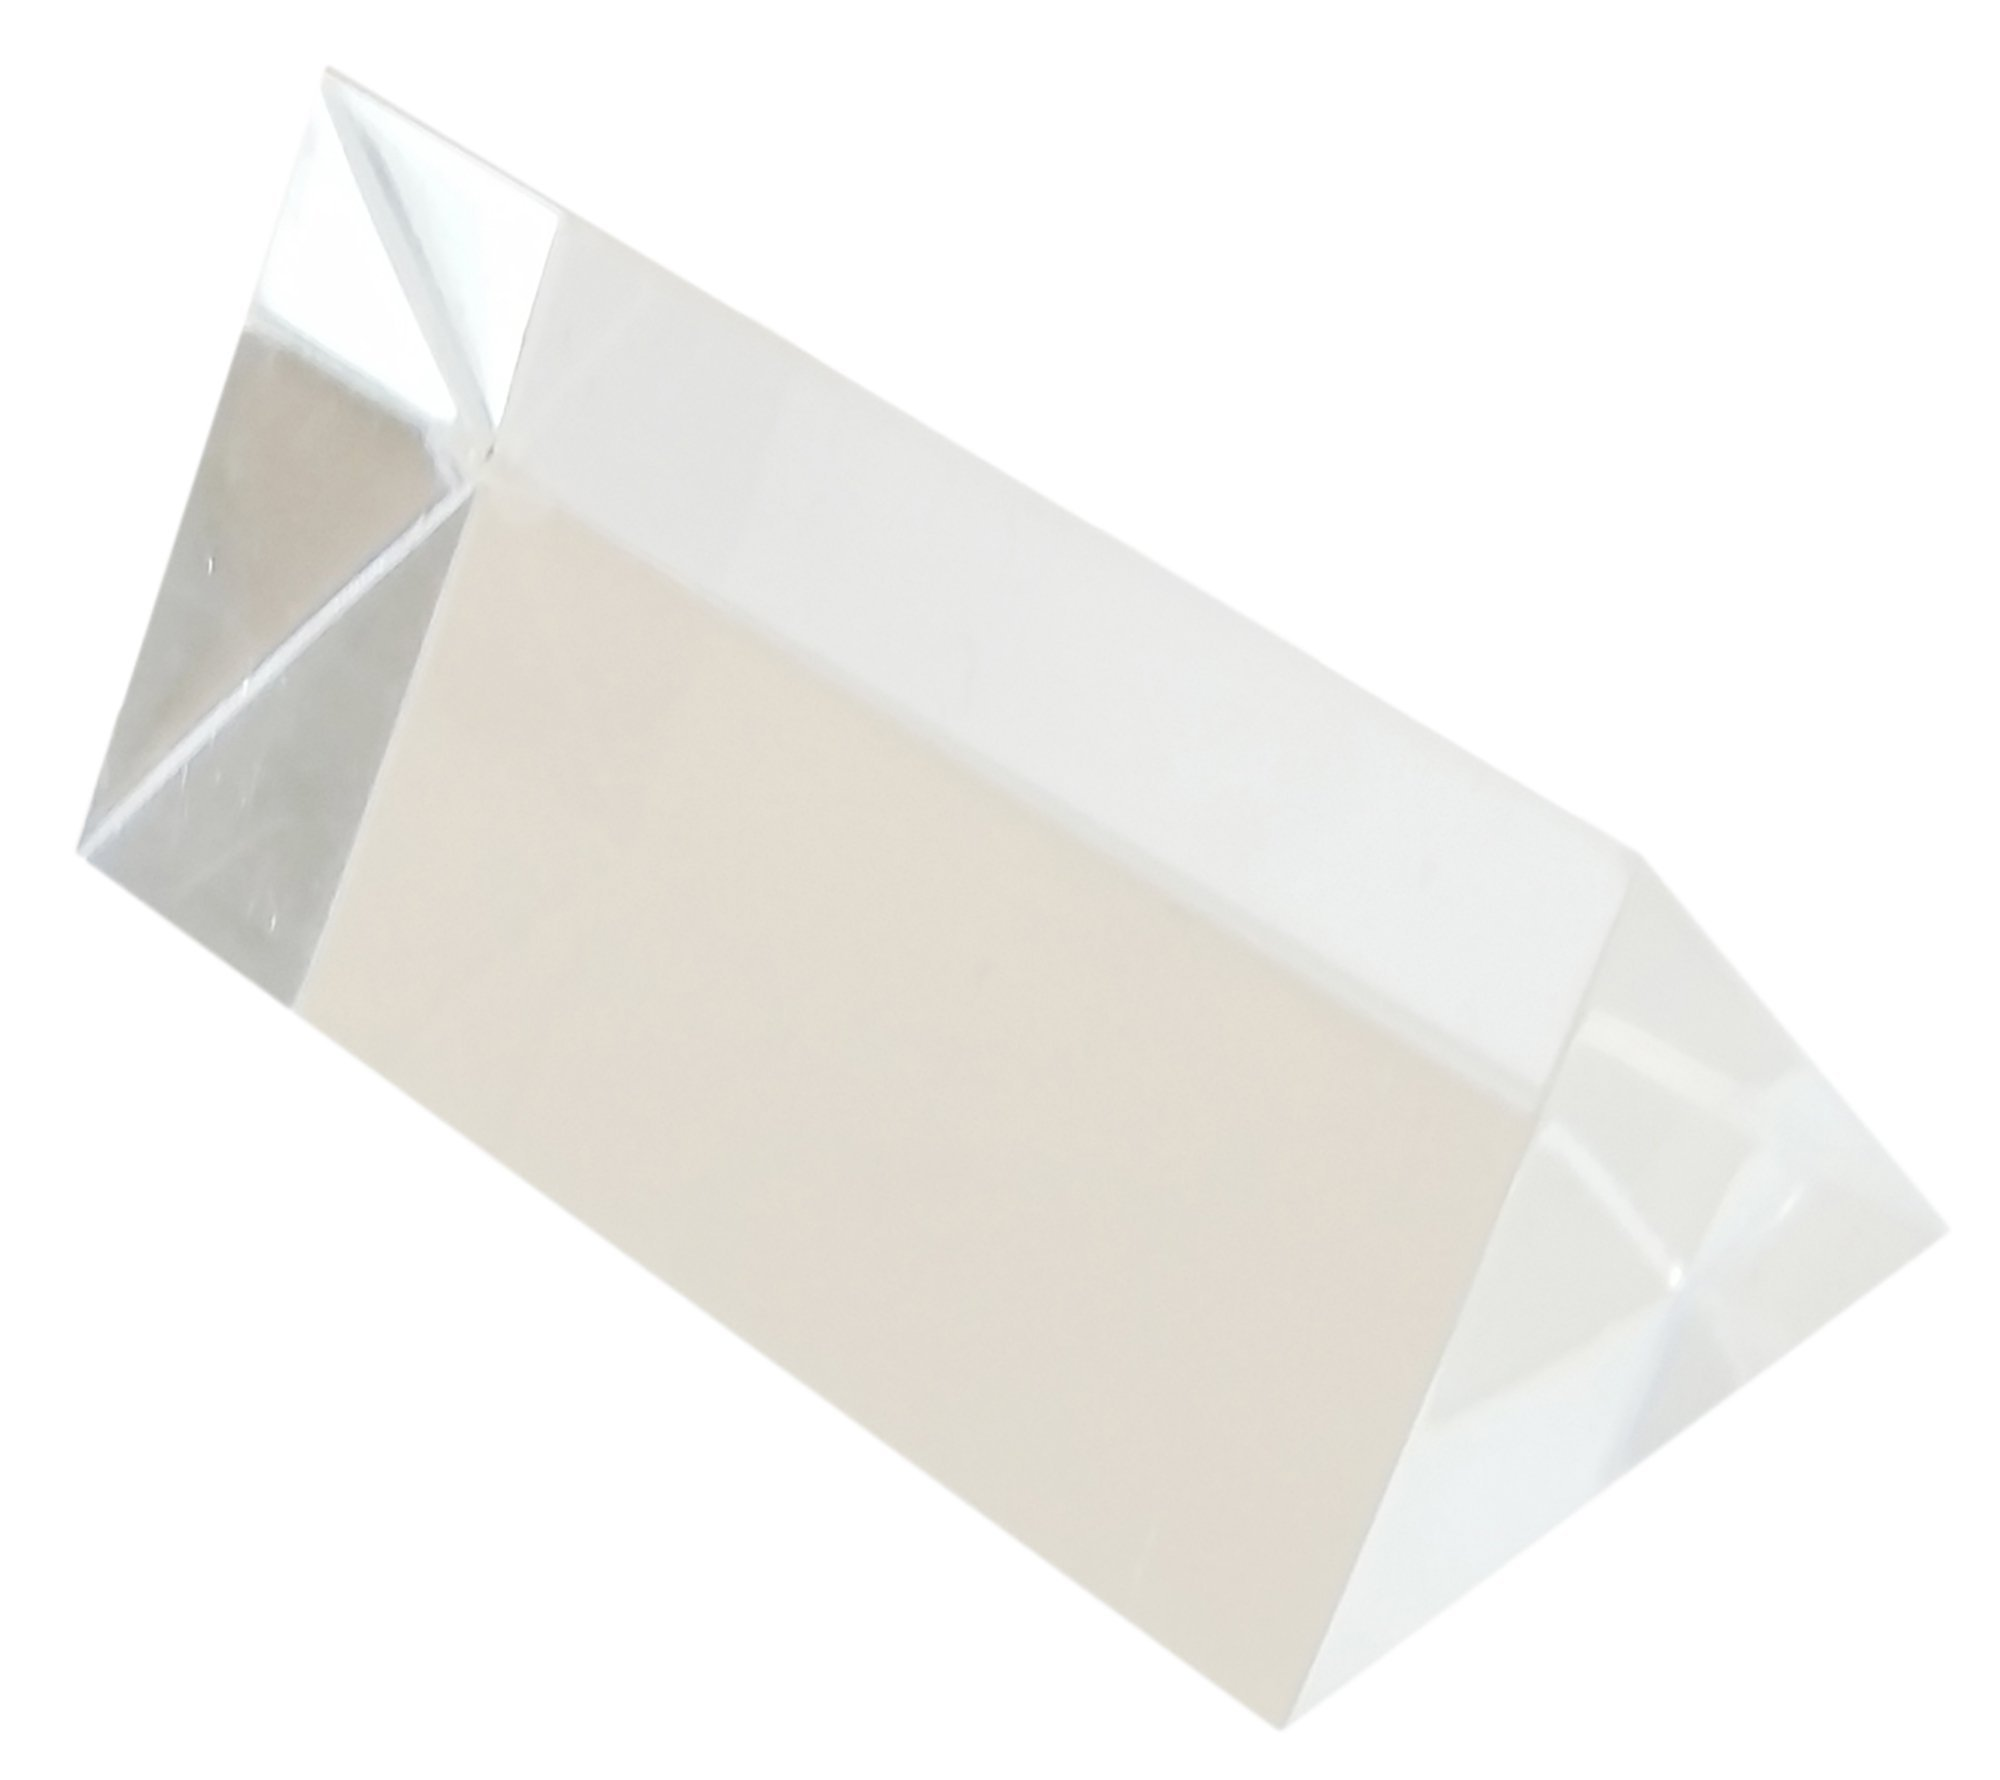 GSC International 4-90974-10 Acrylic Equilateral Prism, 25mm face, 50mm Long (Pack of 10)